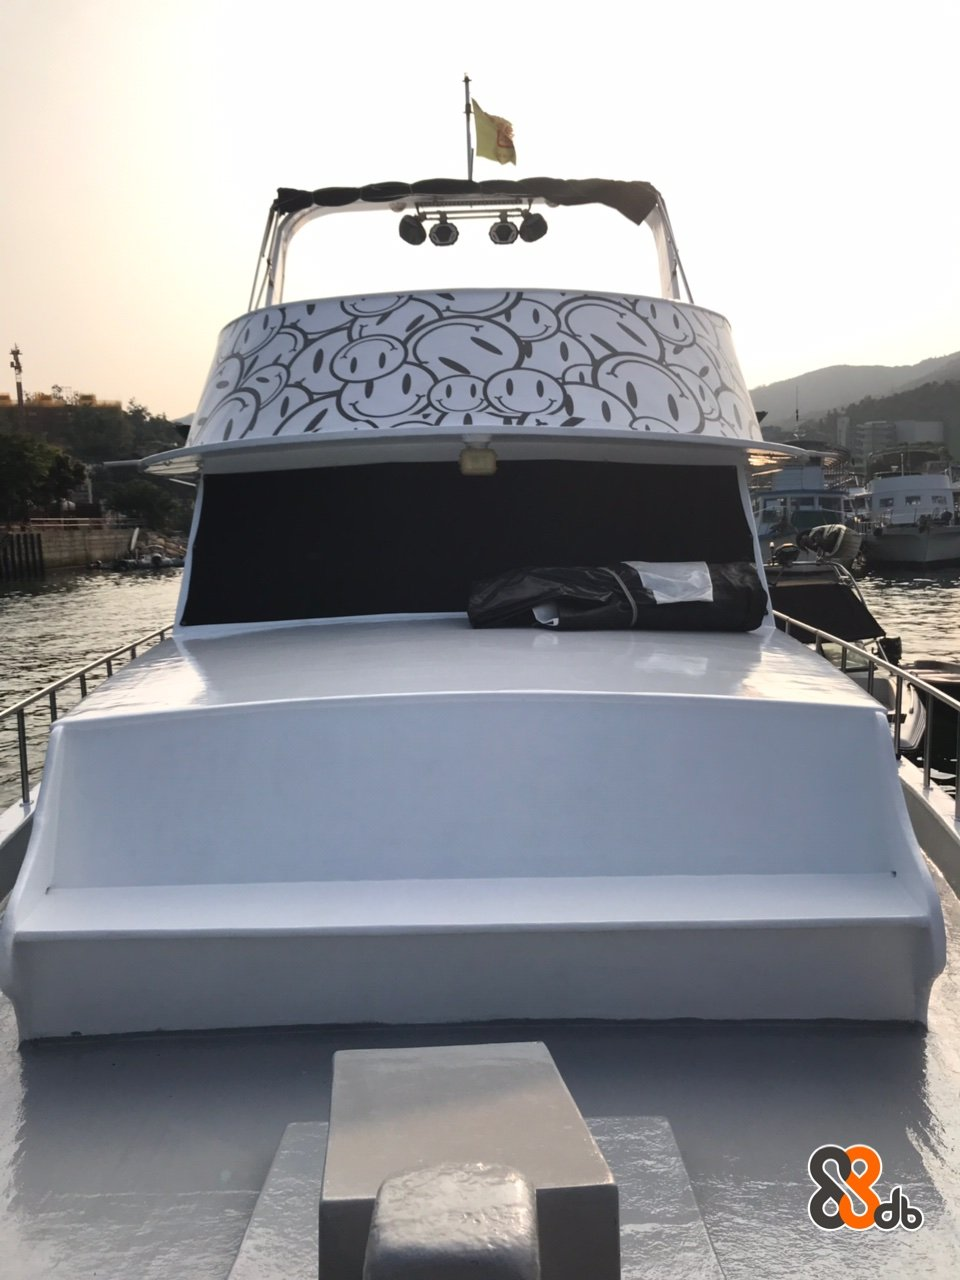 Vehicle,Yacht,Boat,Water transportation,Automotive exterior